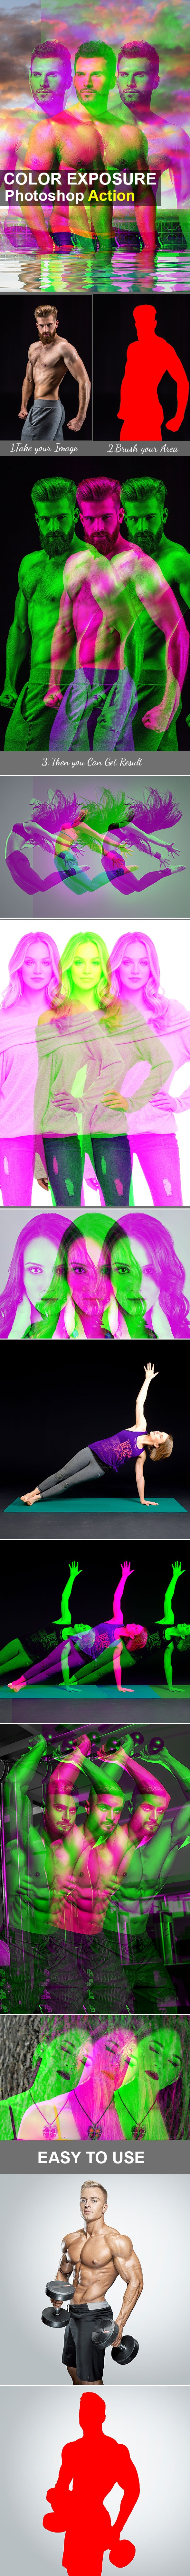 Color Exposure Photoshop Action - Photo Effects Actions